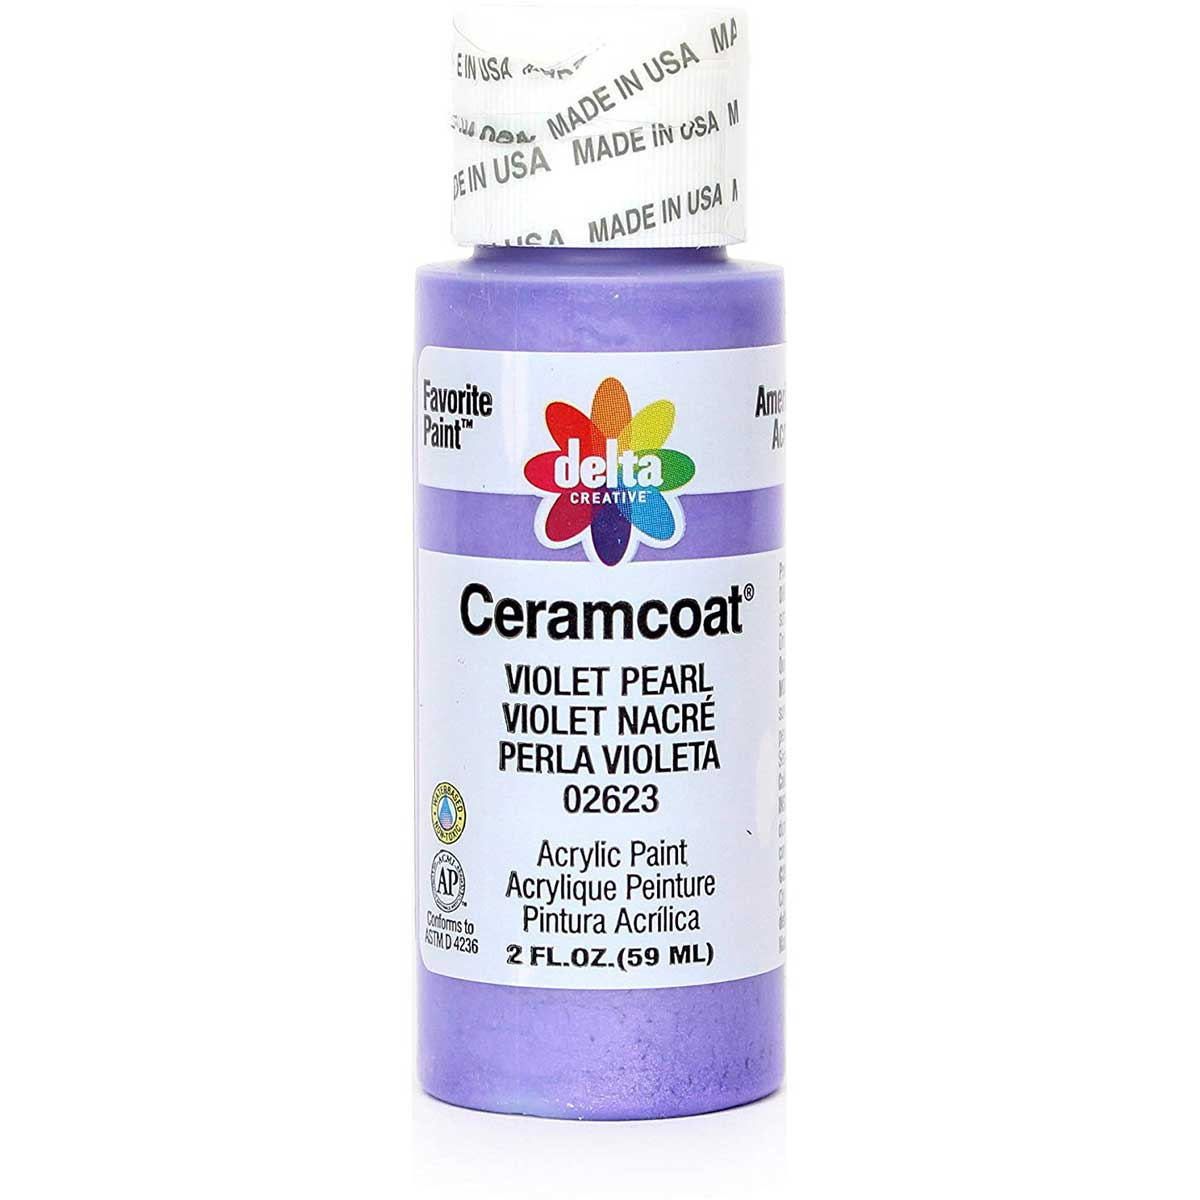 Delta Ceramcoat ® Acrylic Paint - Violet Pearl, 2 oz. - 026230202W